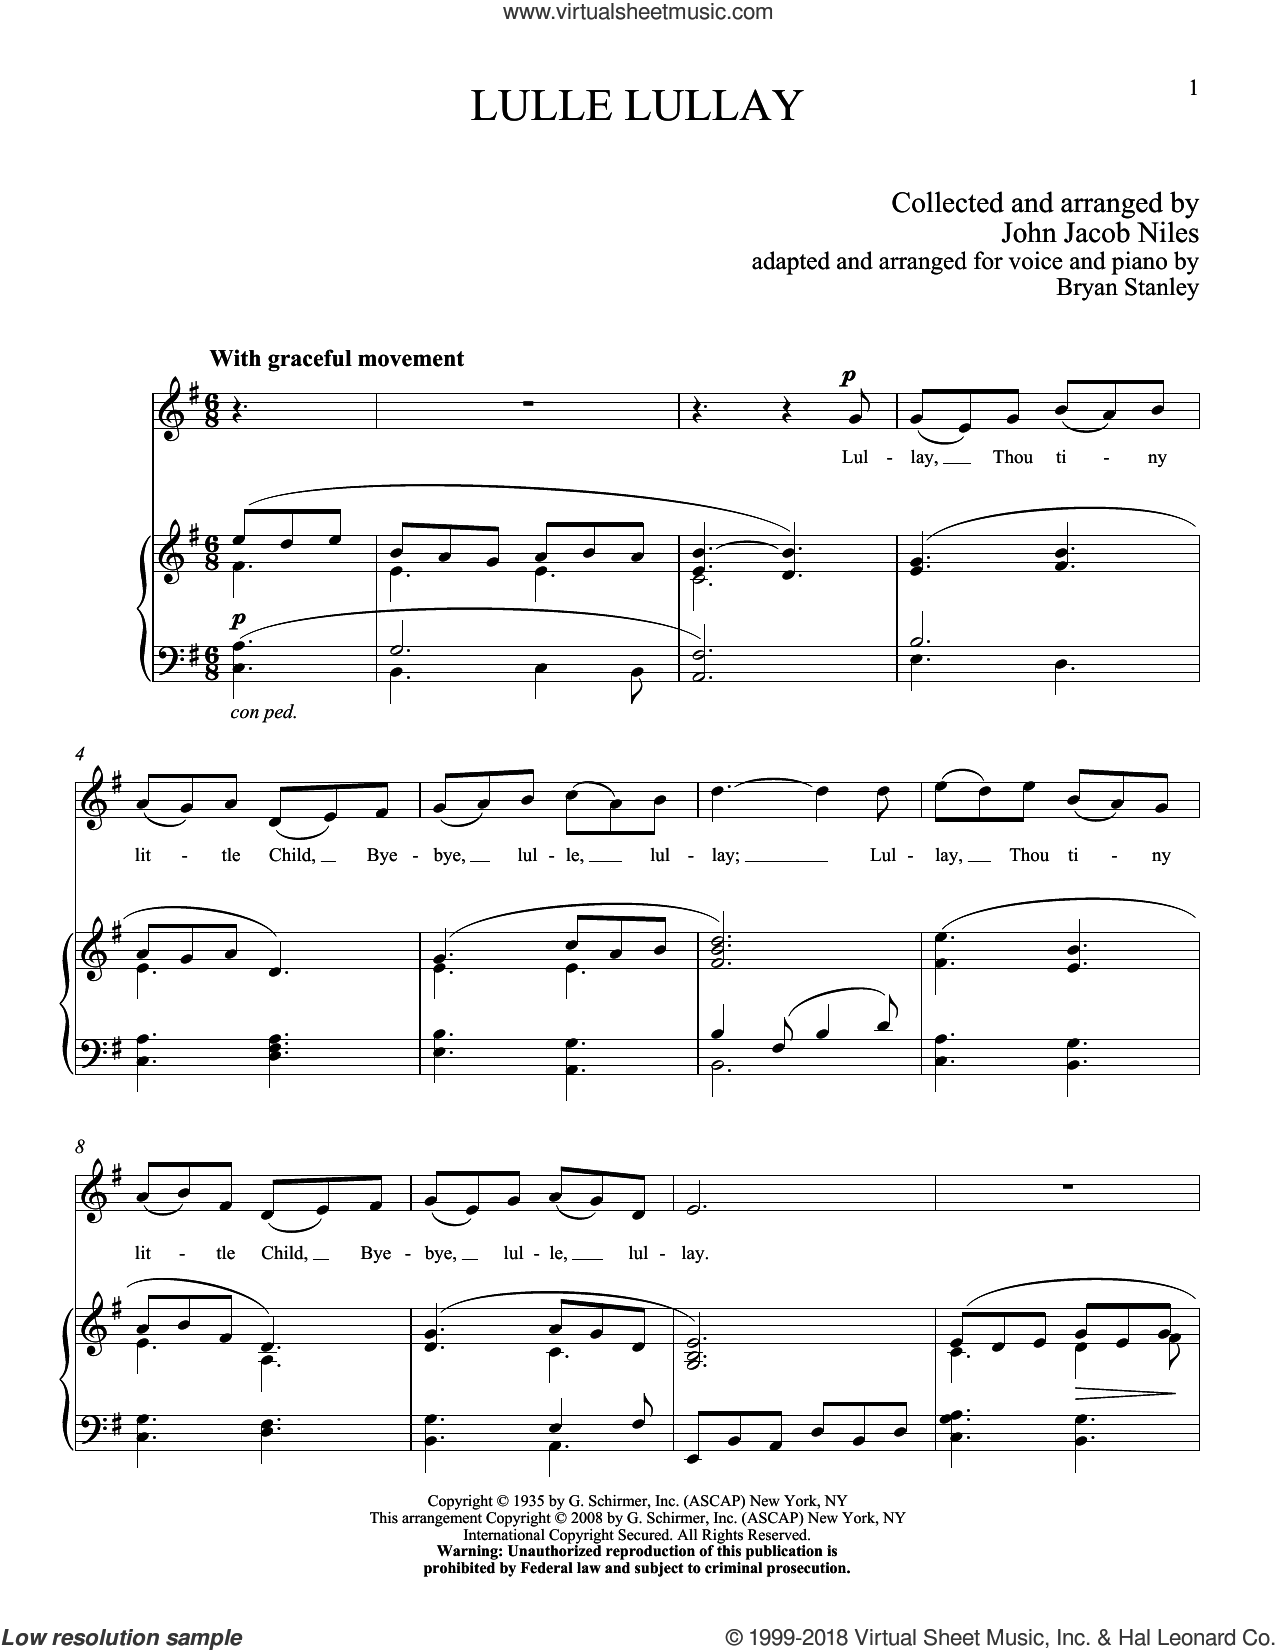 Lulle Lullay sheet music for voice and piano (High ) by John Jacob Niles. Score Image Preview.